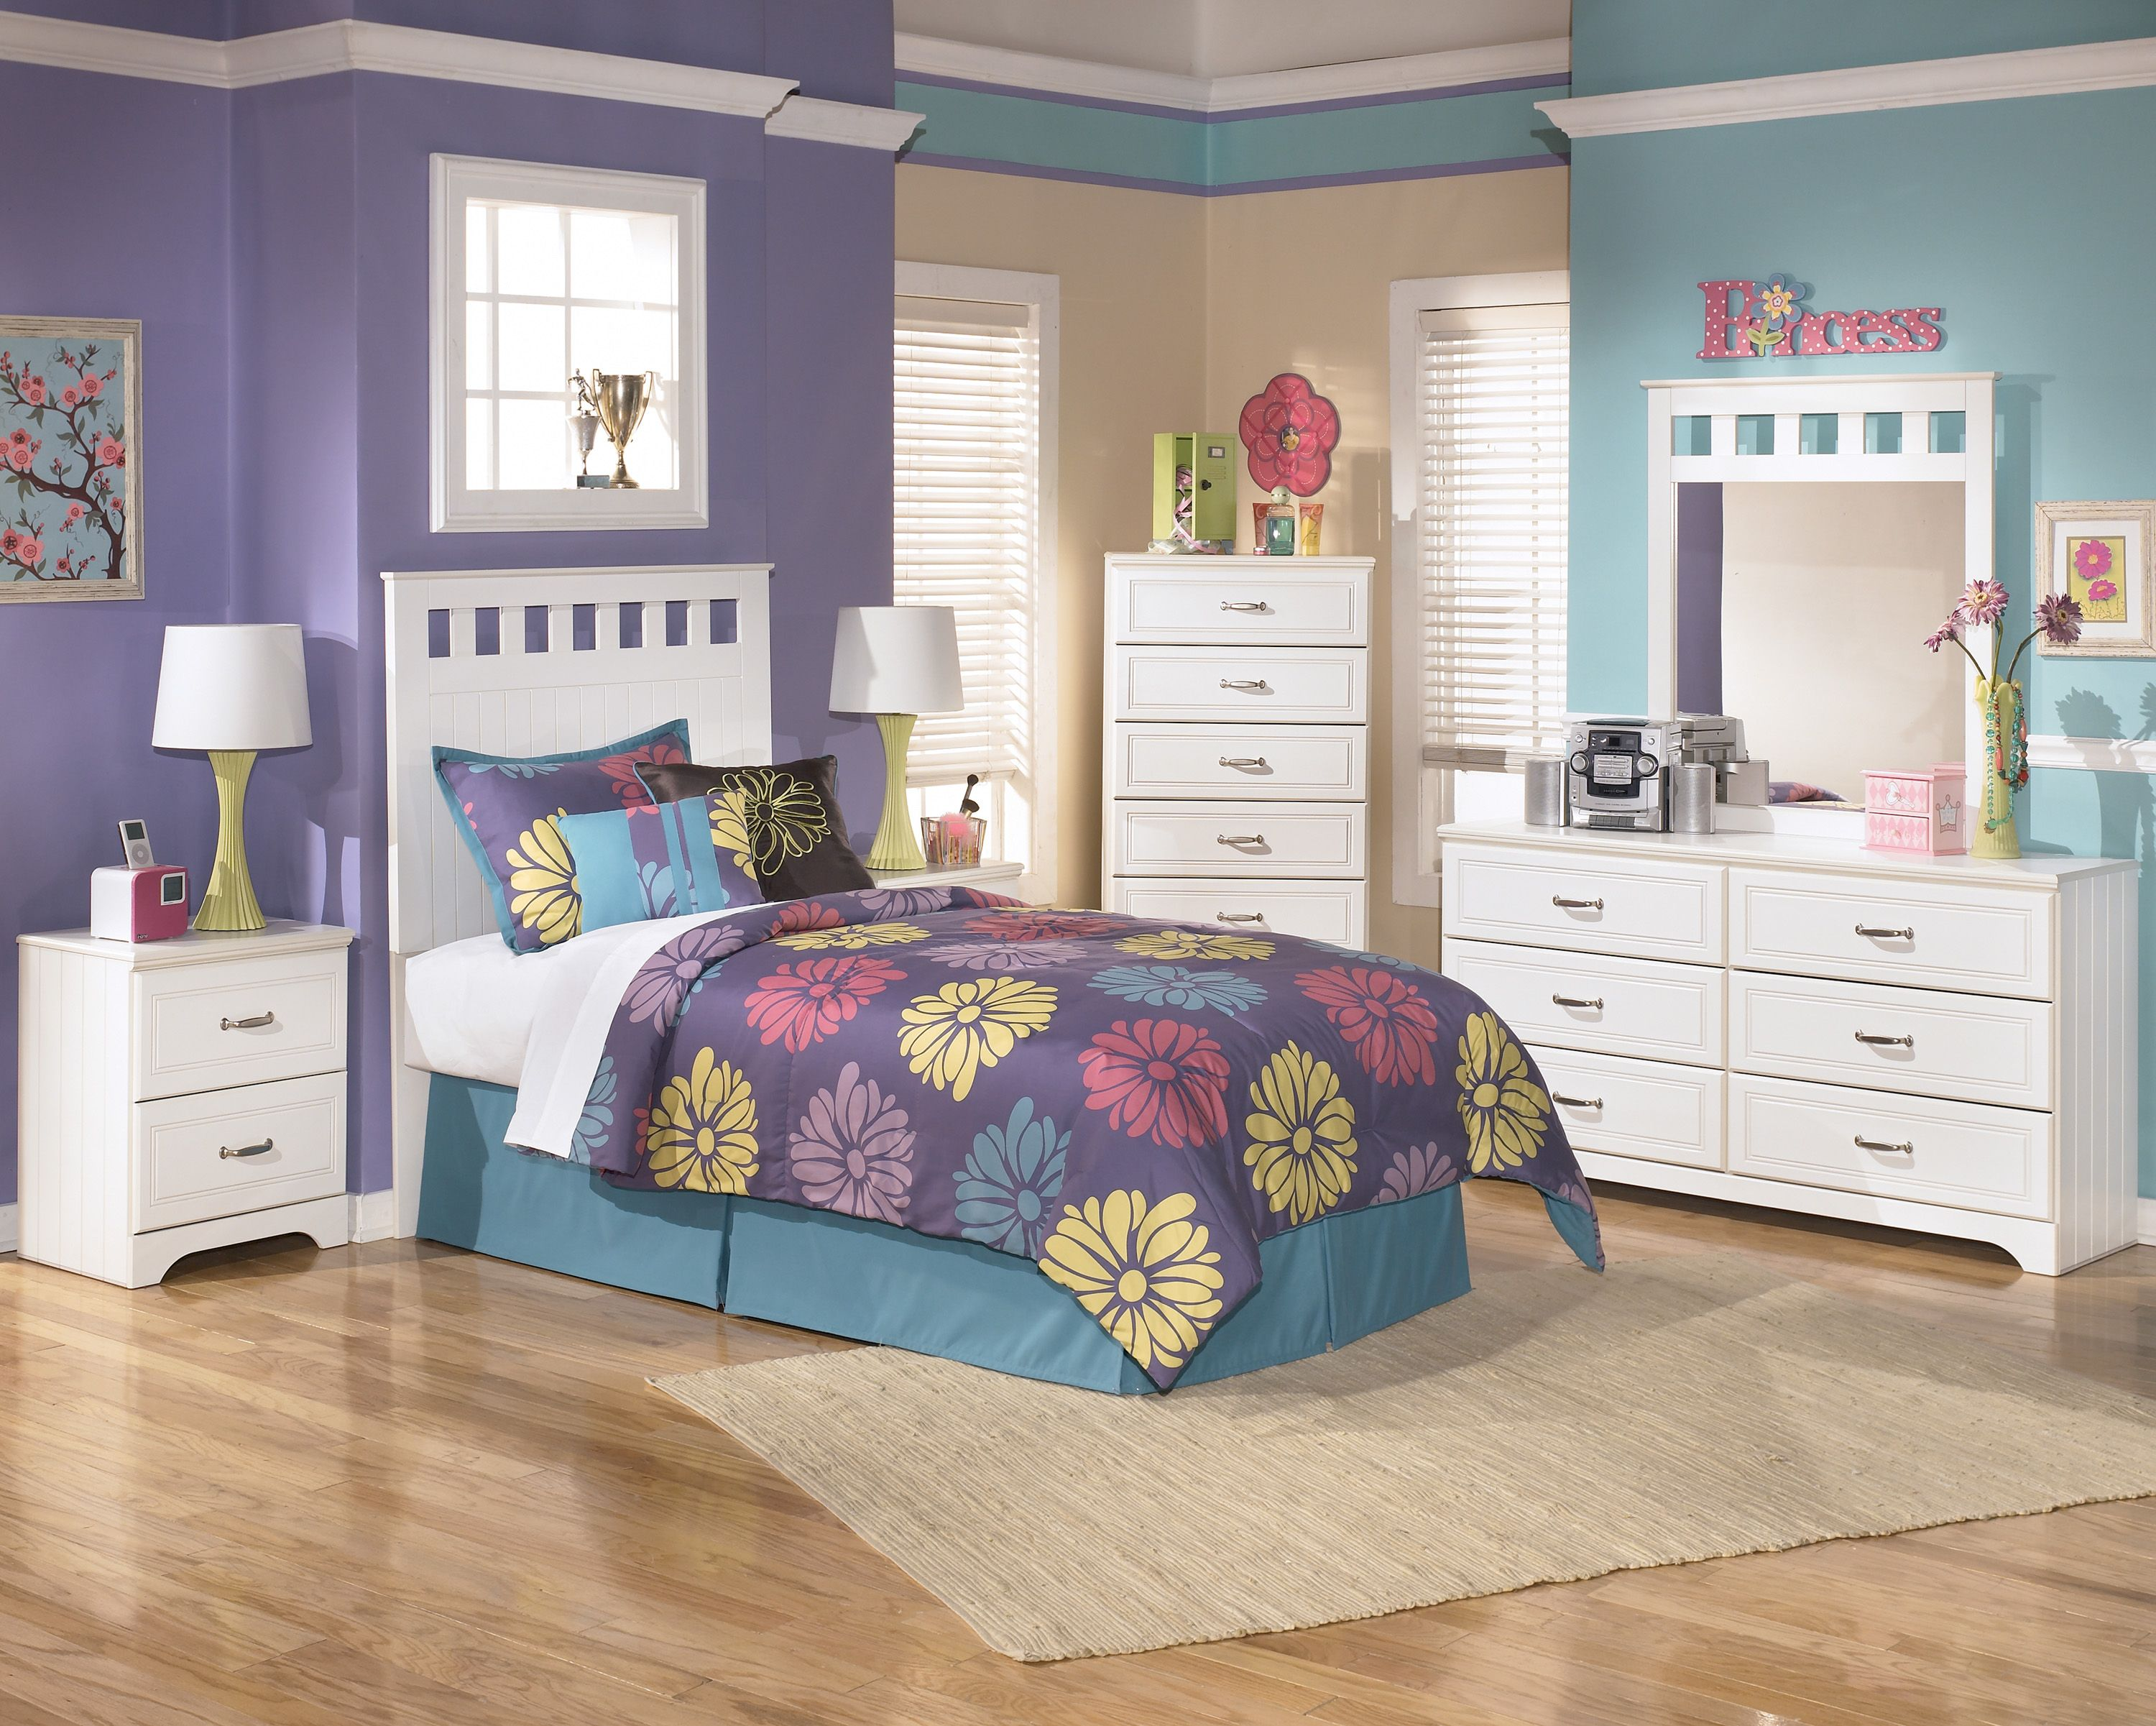 awesome bedroom furniture. cool kids furniture great bedroom kid sets awesome e